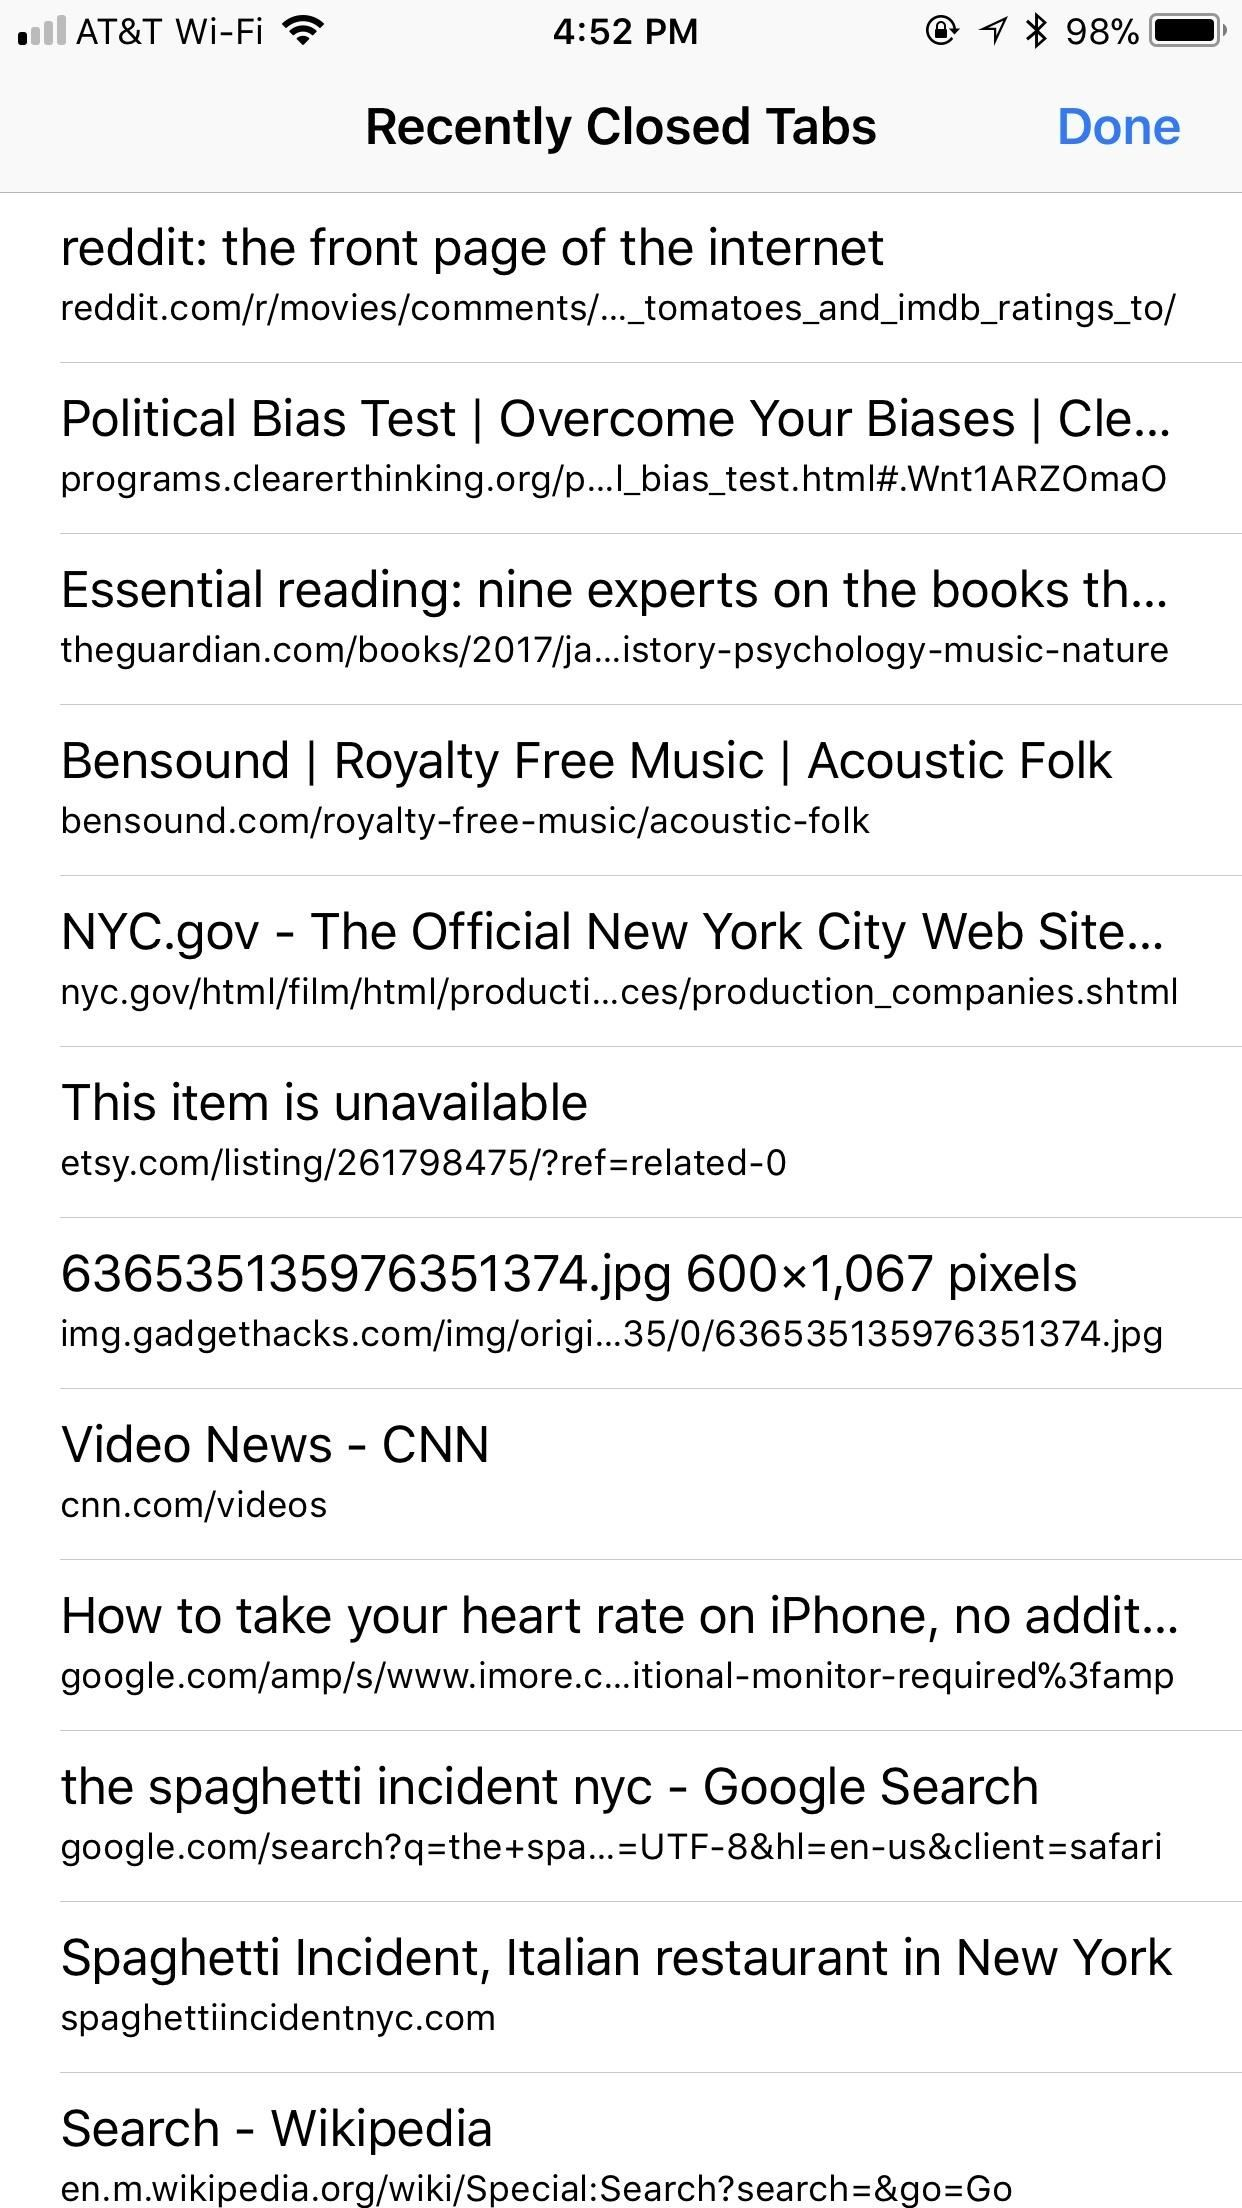 Safari 101: How to Clear Your Recently Closed Tabs List